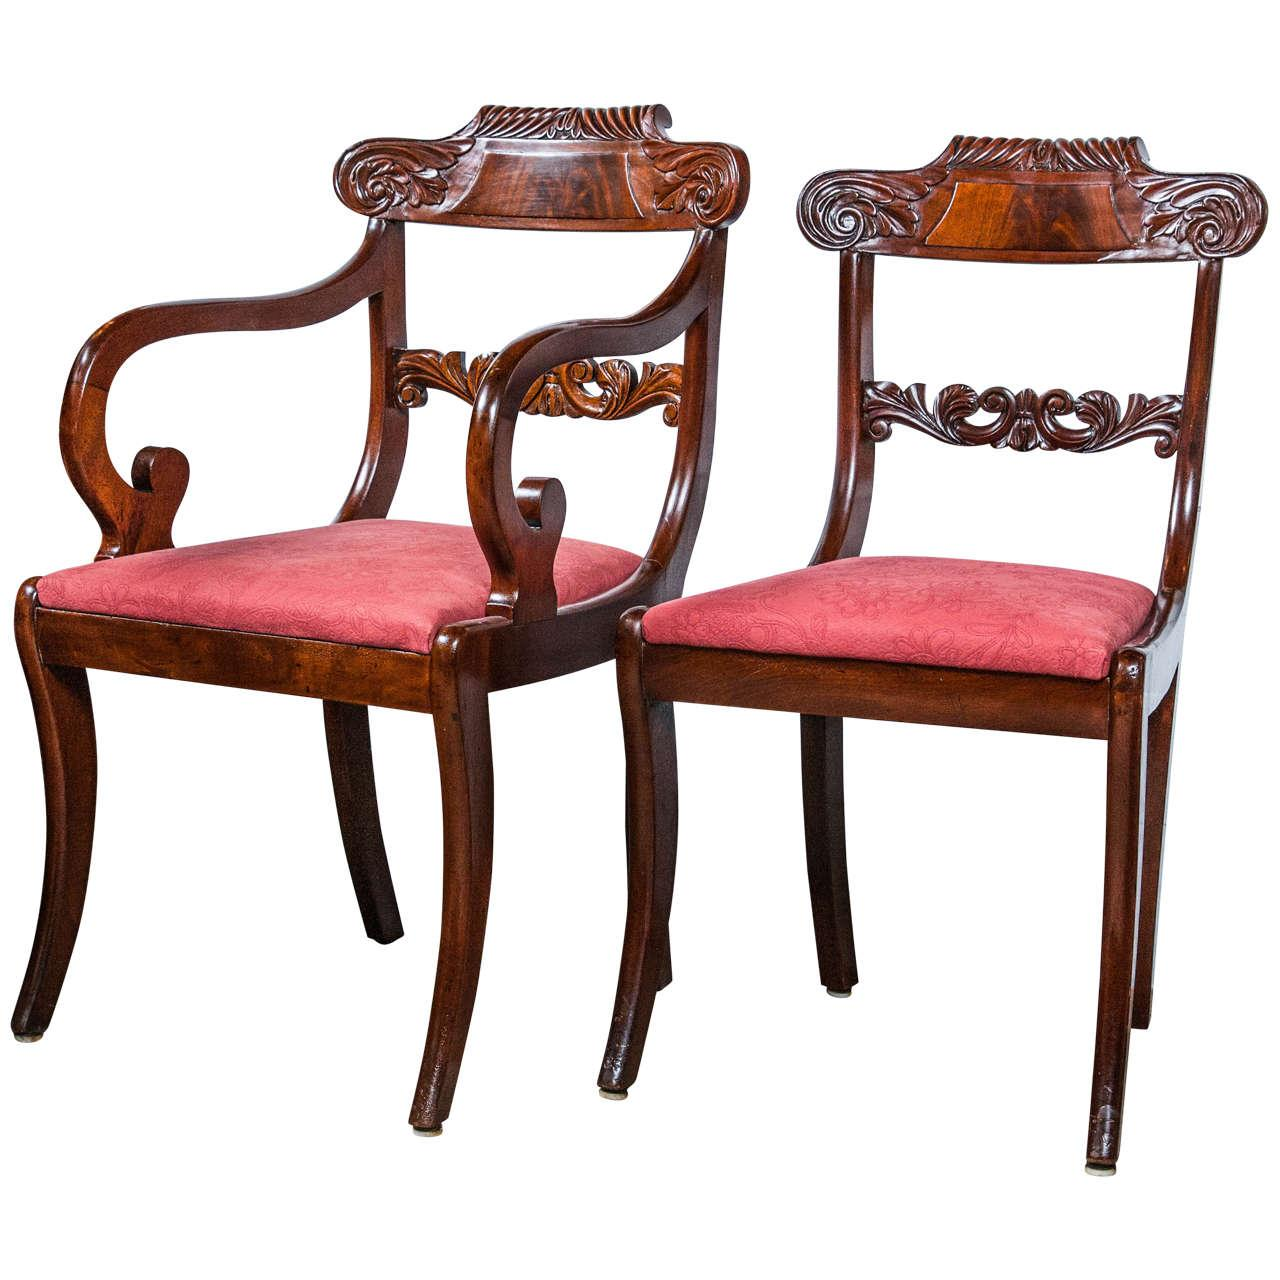 19th C. English Regency Dining Chairs   Set Of 8 For Sale   Image